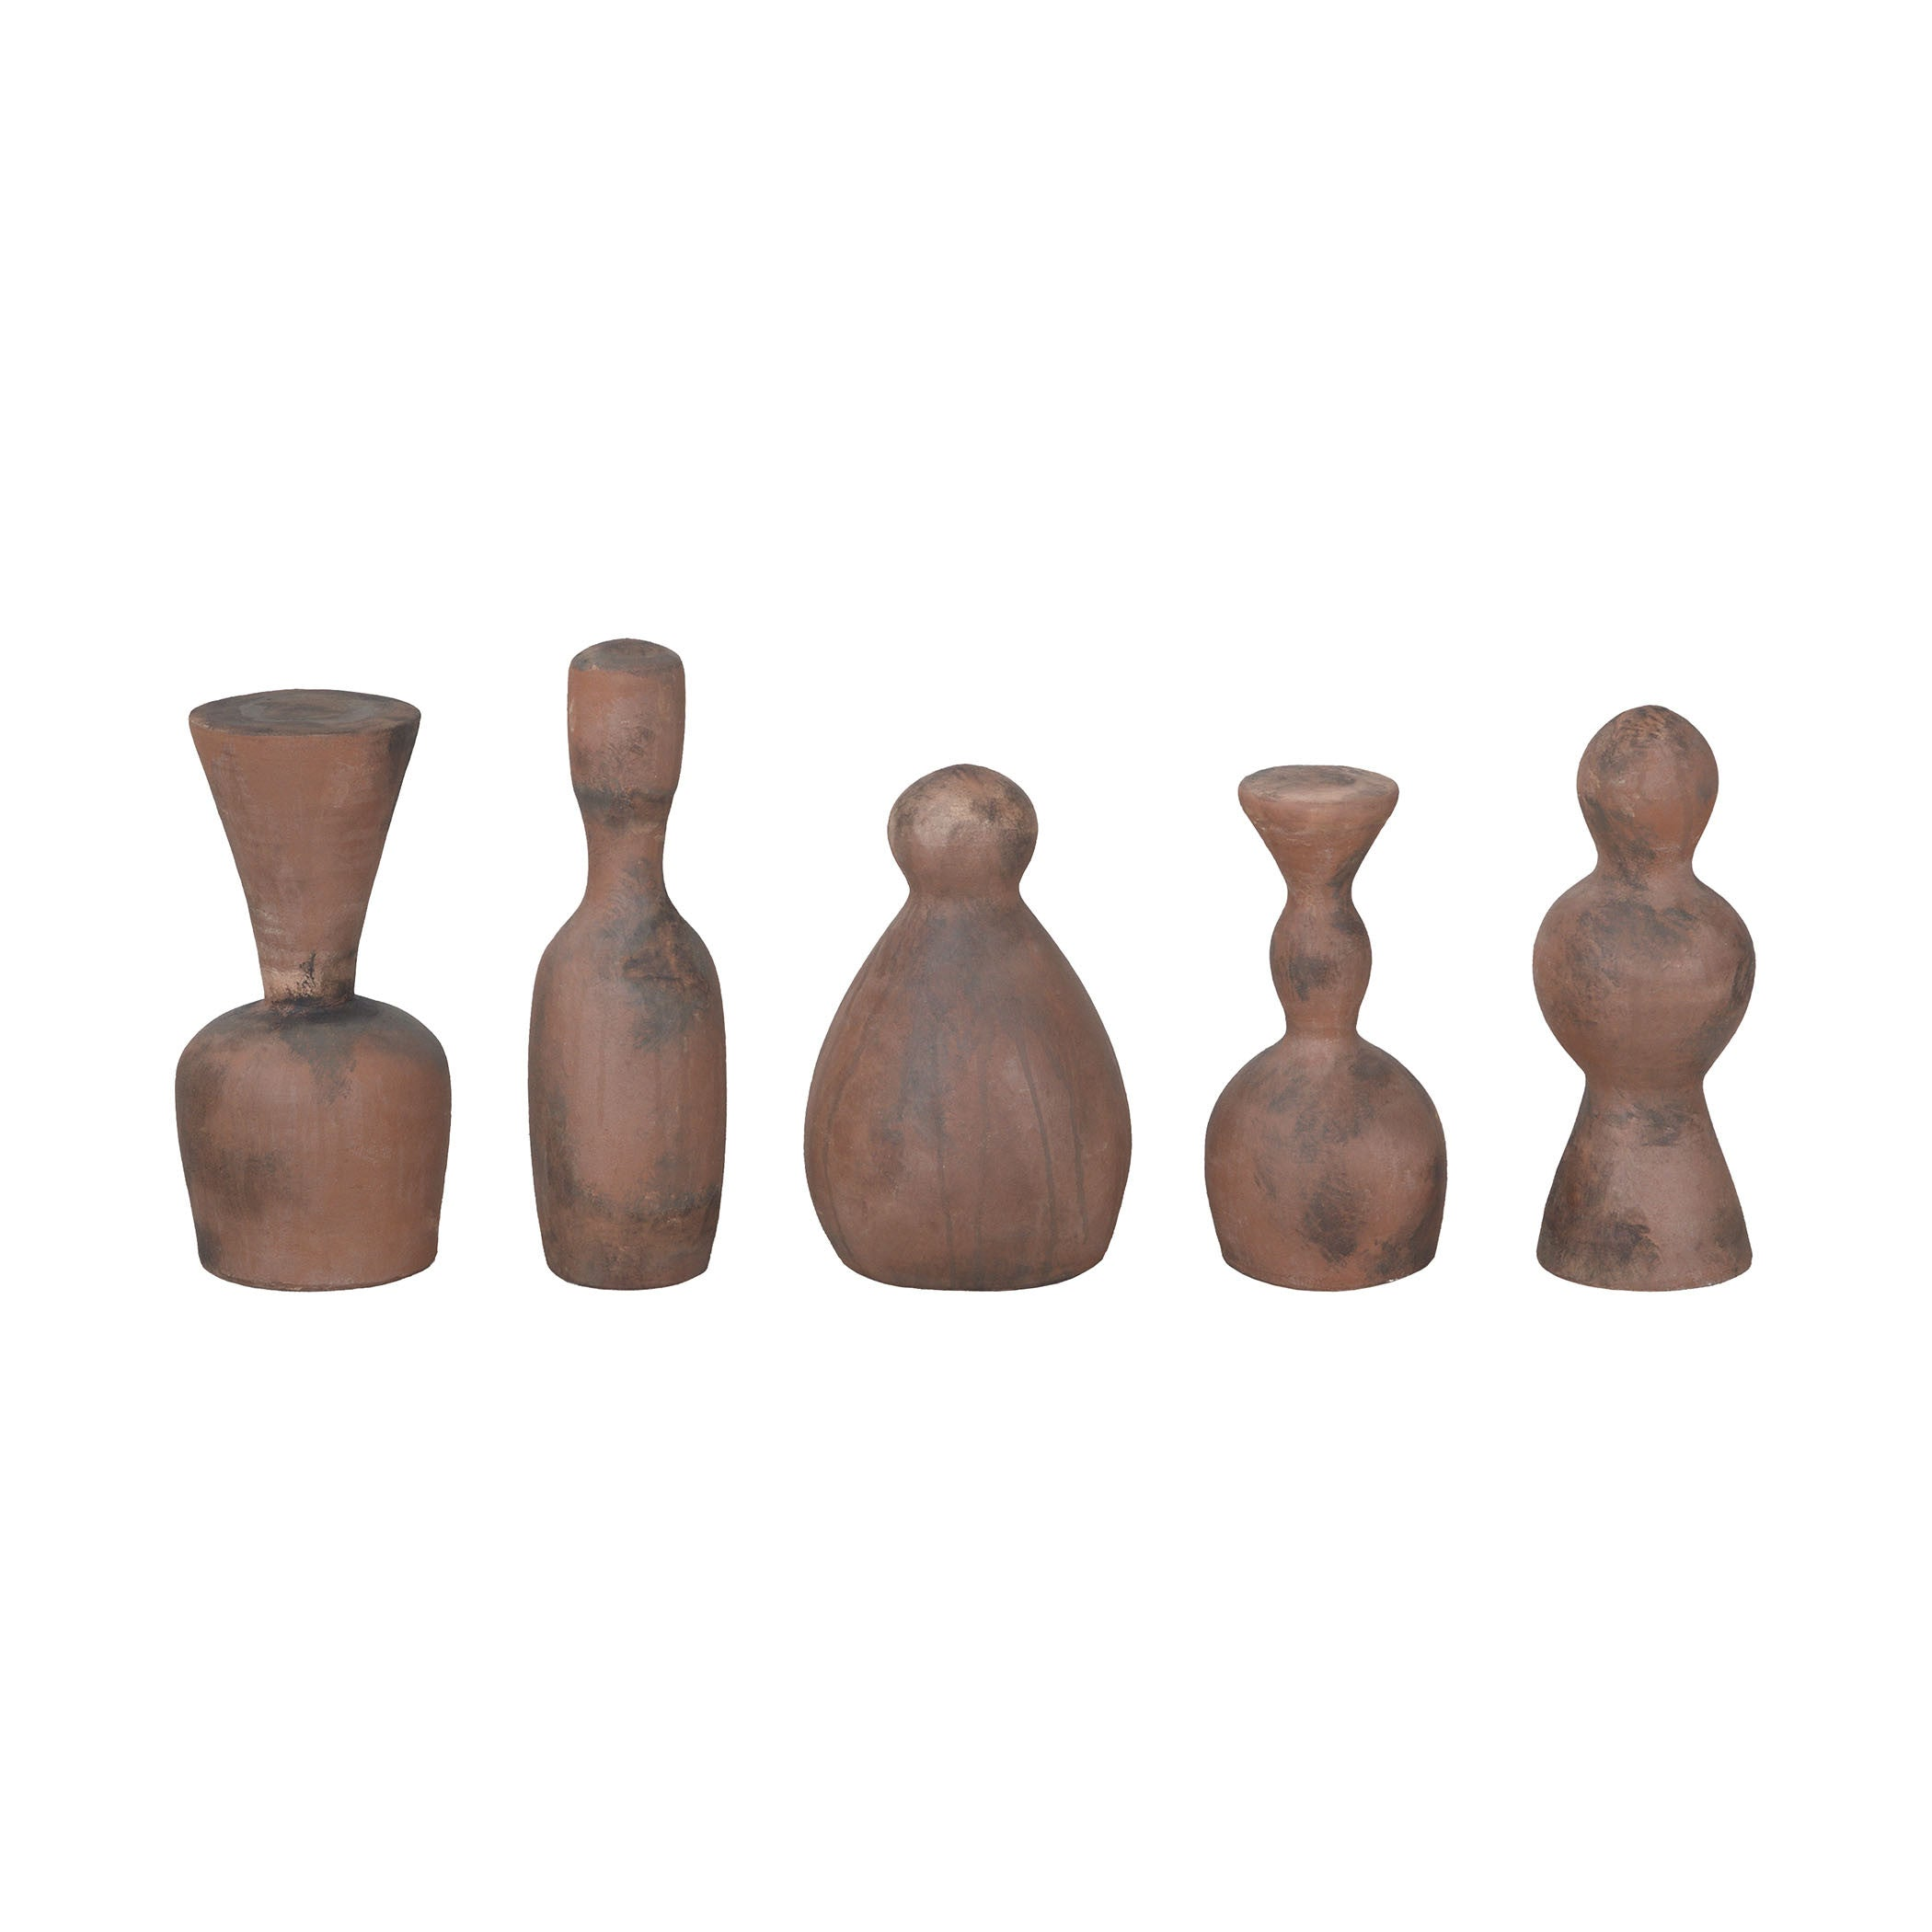 Guildmaster GUI-2015520S Terra Cotta Artifacts Collection Aged Terracotta Finish Accessory